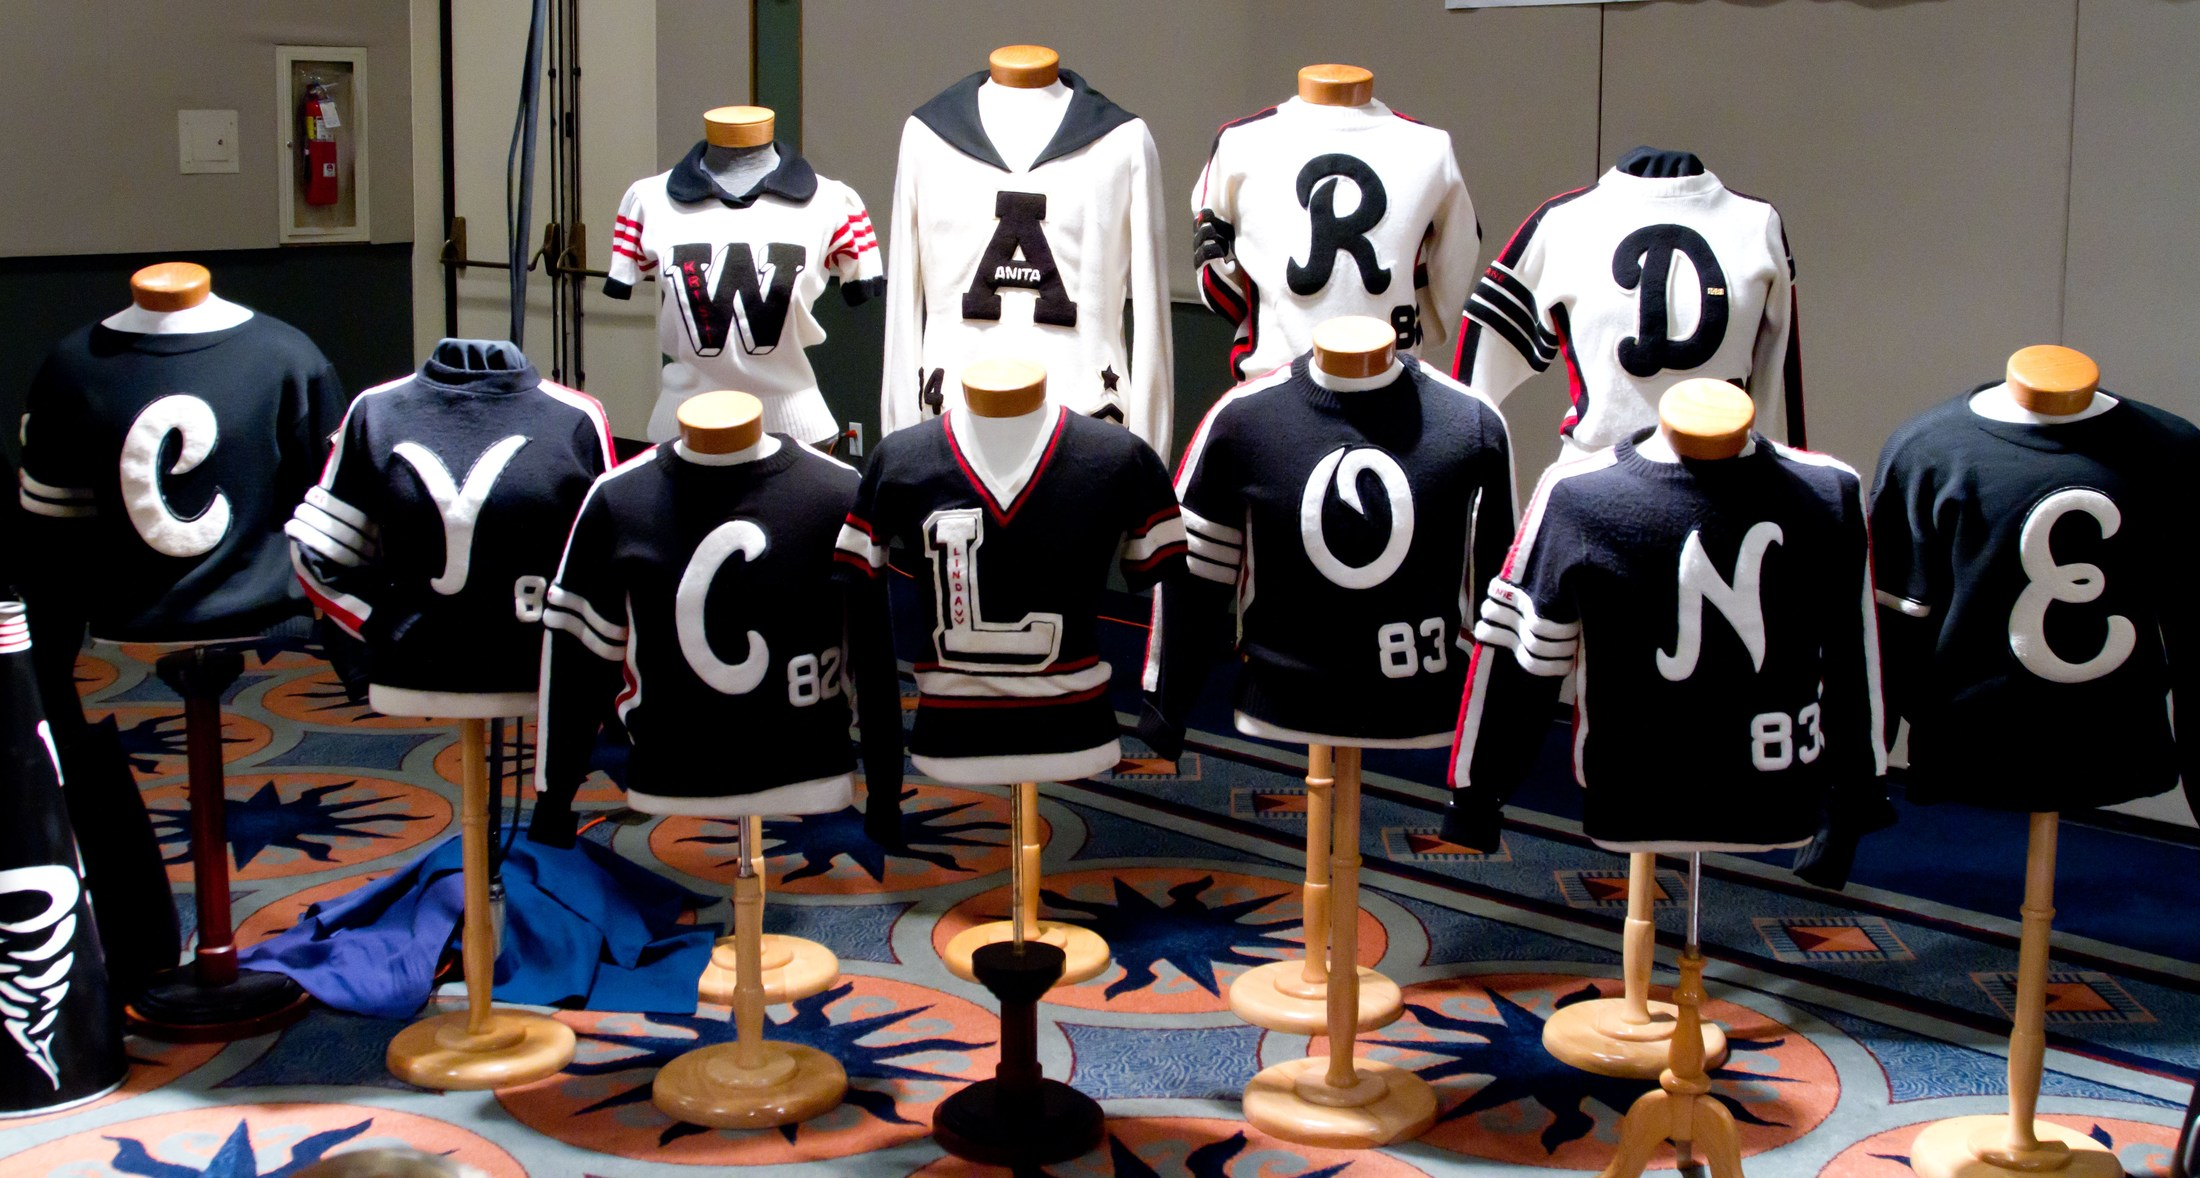 Mannequin shirts arranged to spell out Ward Cyclone